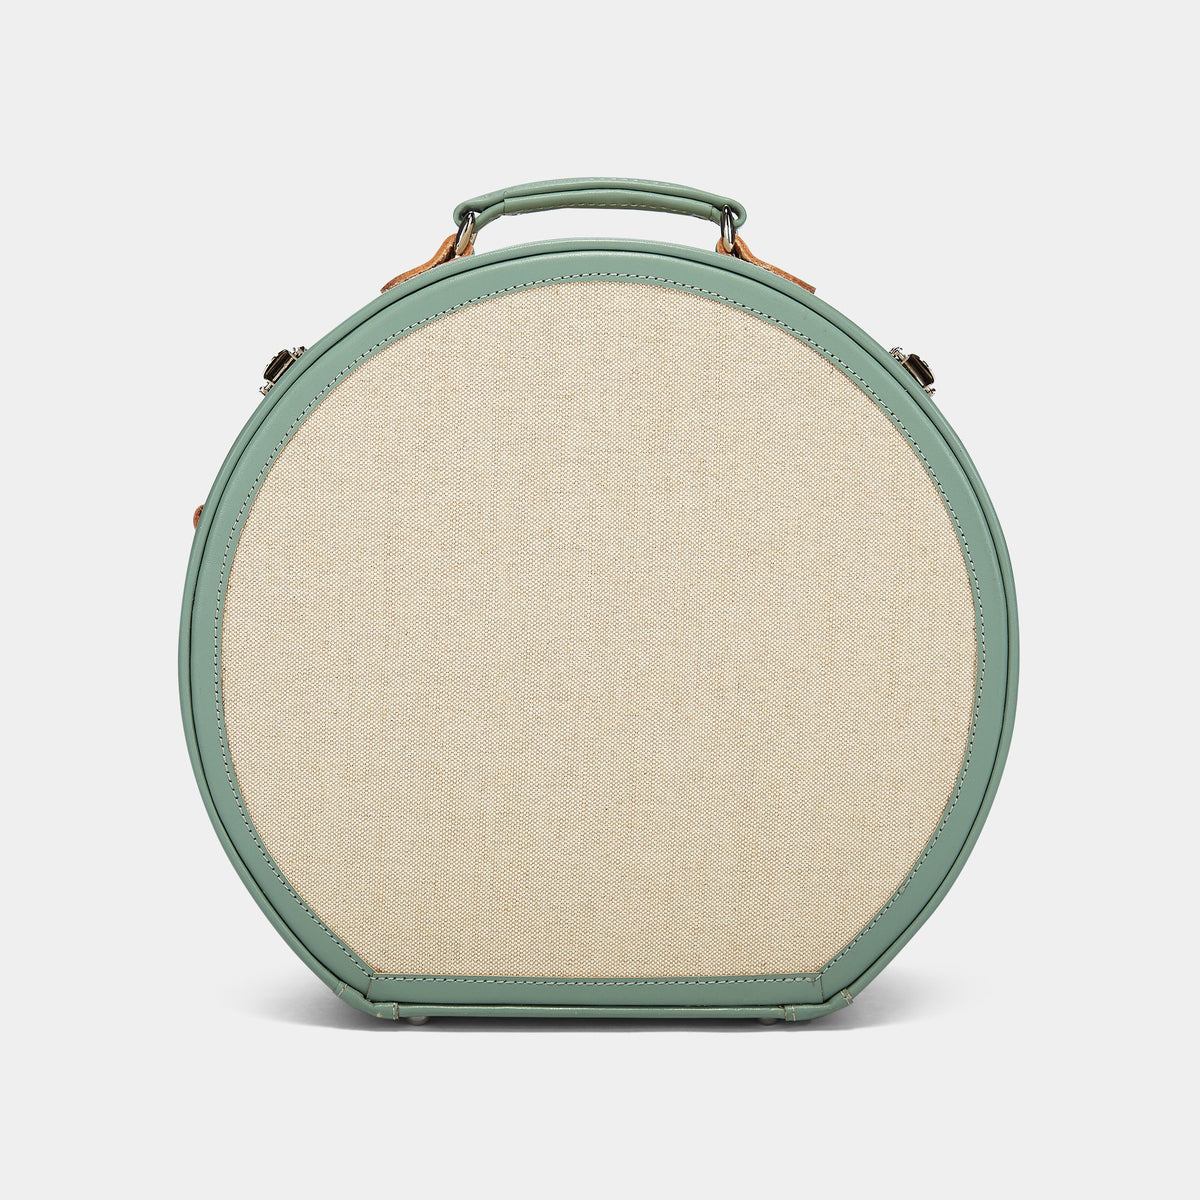 The Editor Hatbox Large in Seagreen - Hat Box Luggage - Exterior Back with Shoulder Strap